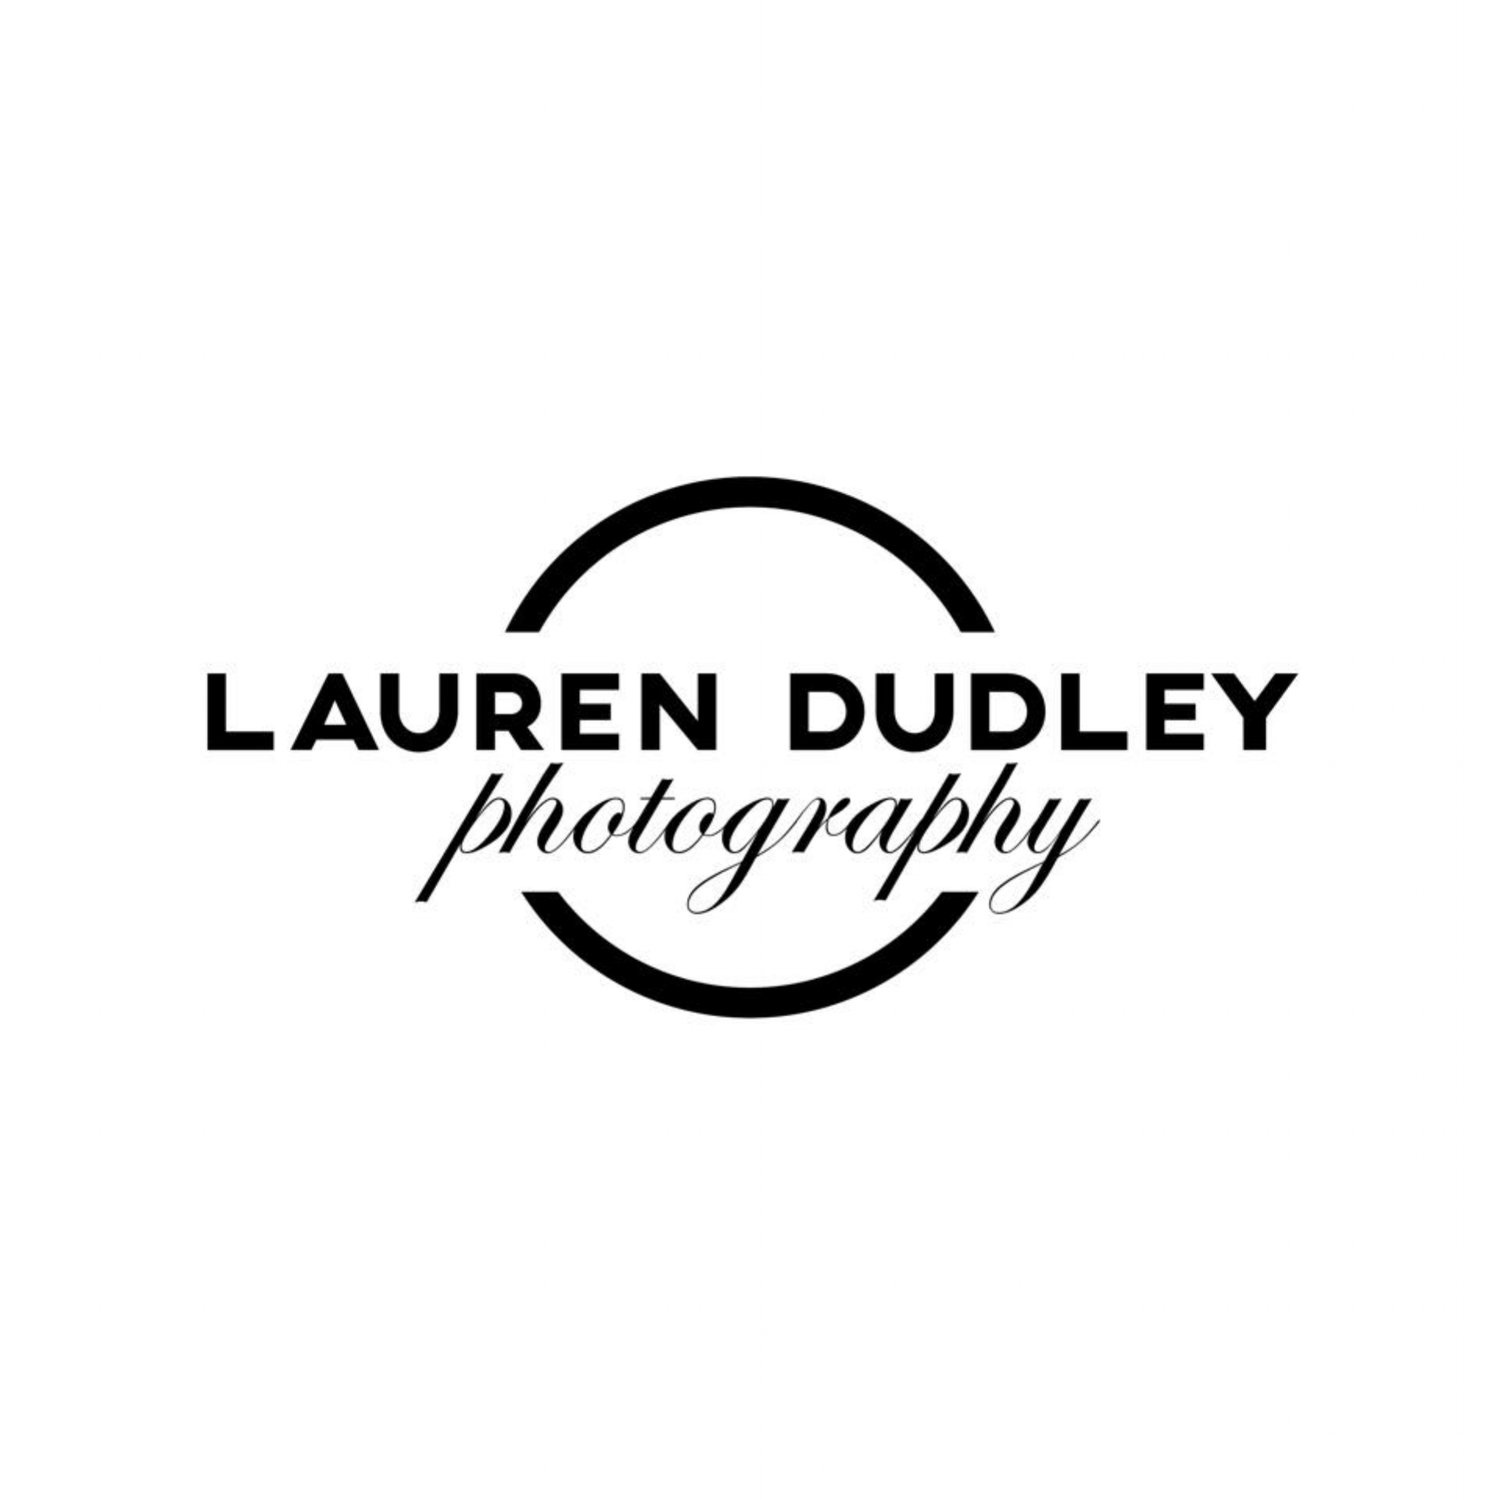 LAUREN DUDLEY PHOTOGRAPHY